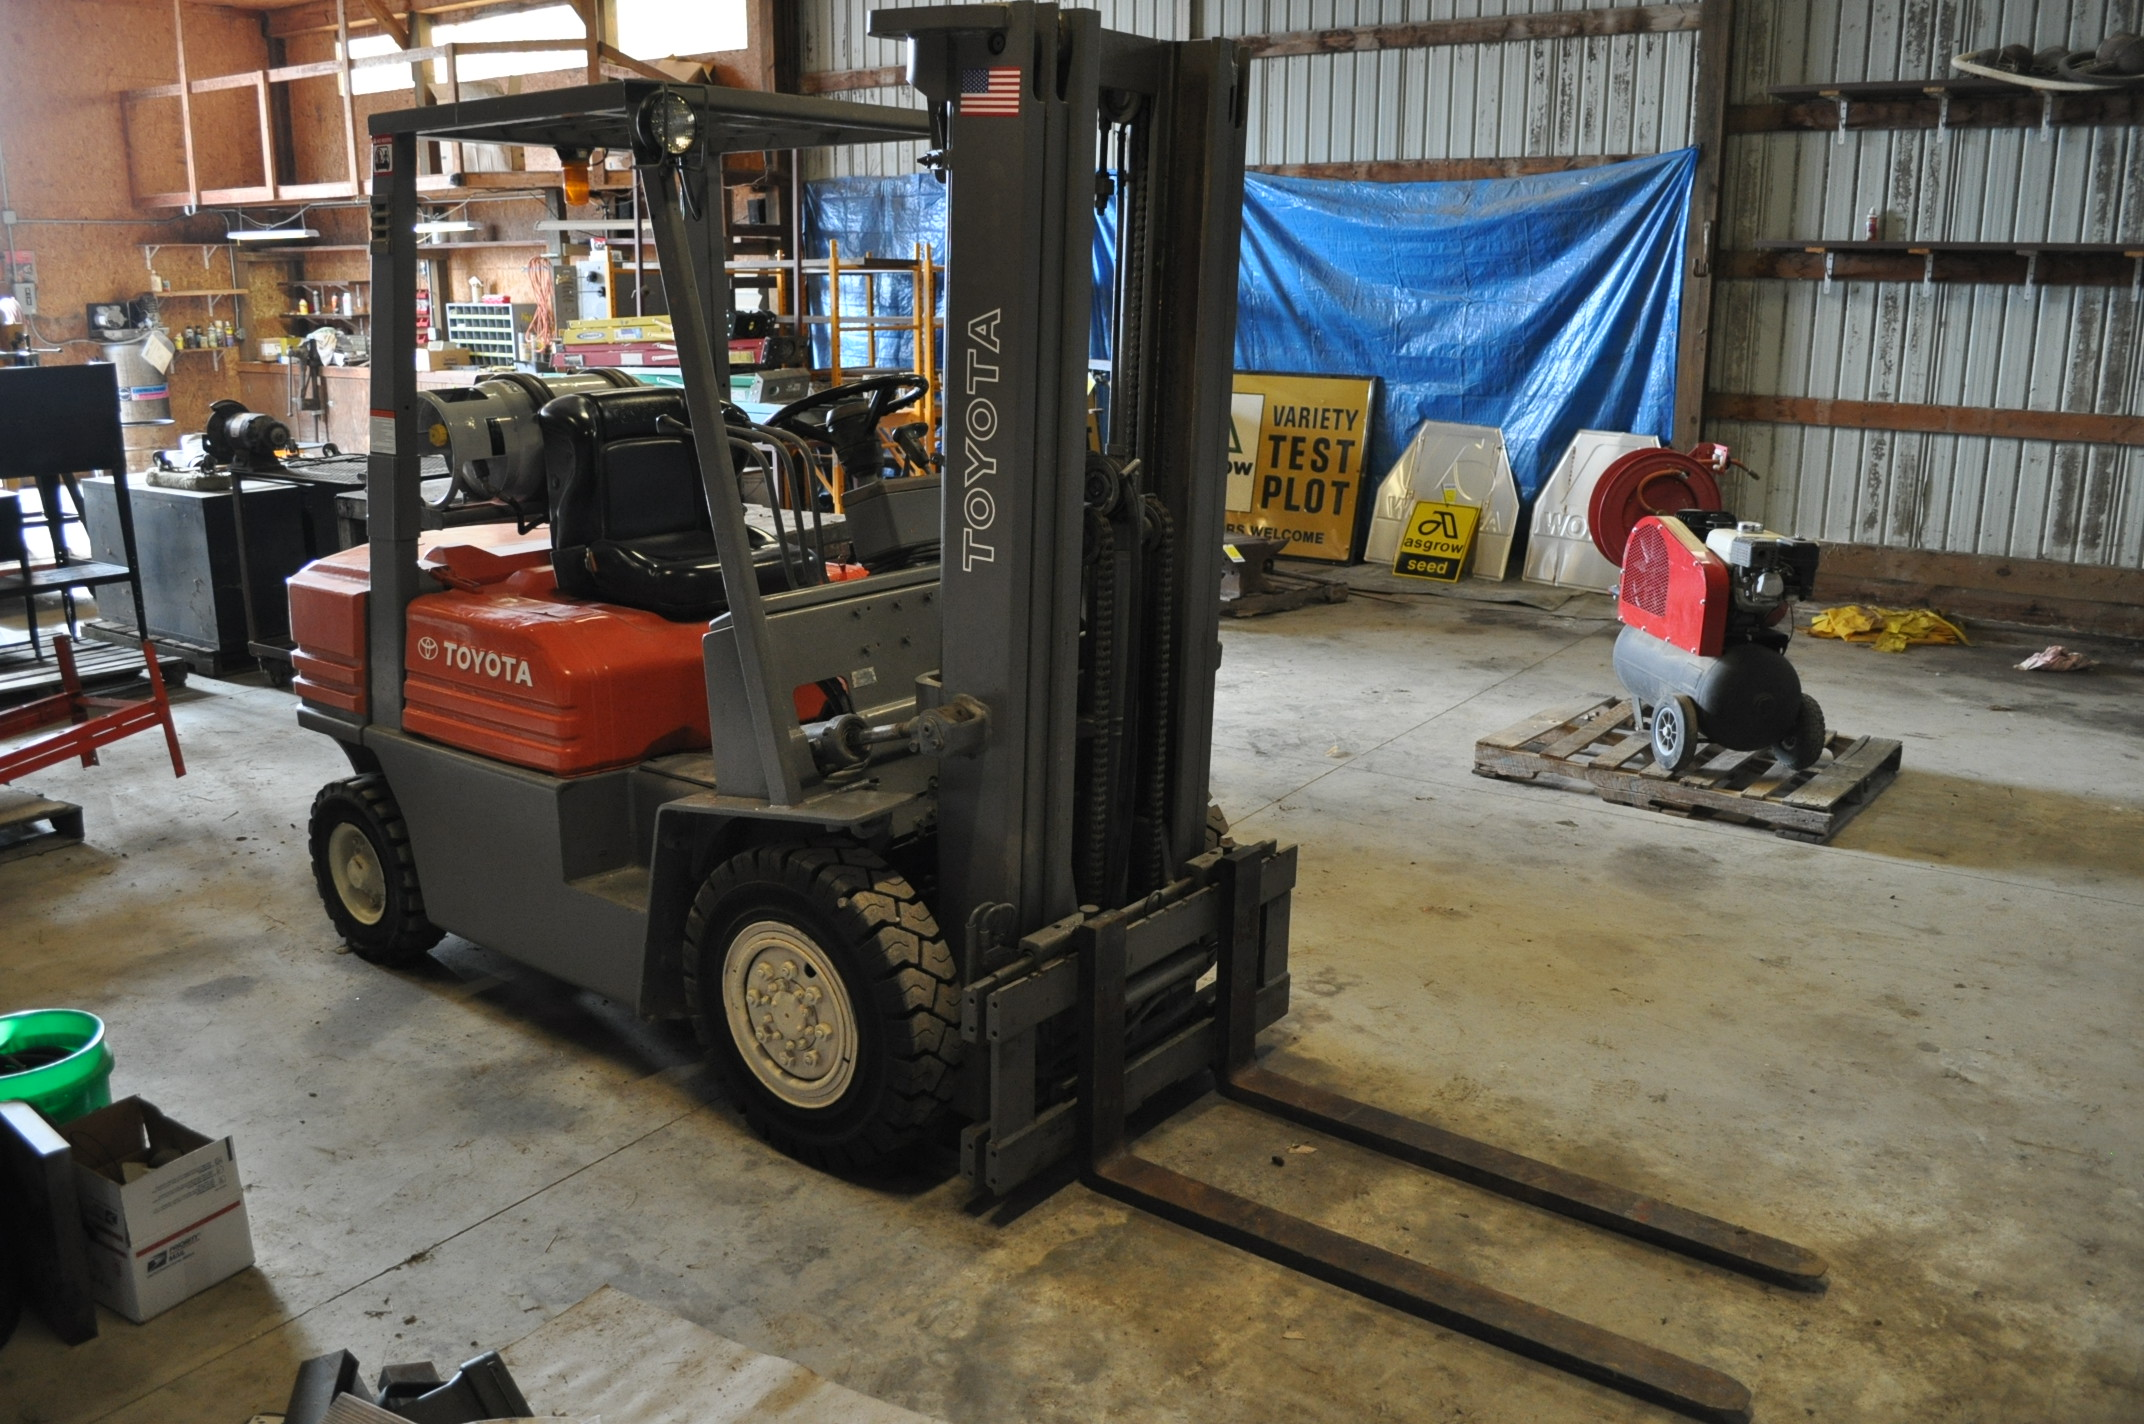 "Toyota 5 FG 10-30 forklift, 3 stage lift, 48"" forks side shift, LP, solid pneumatic, 10,520 hrs - Image 2 of 11"